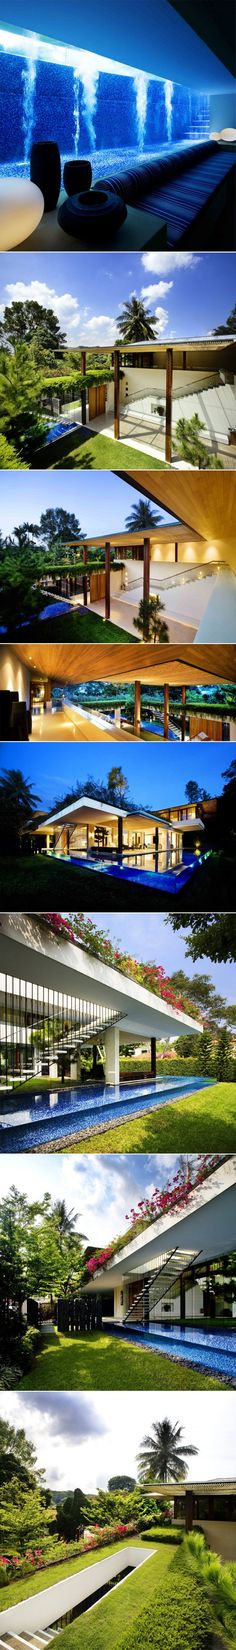 Tangga House by Guz Architects. Singapore